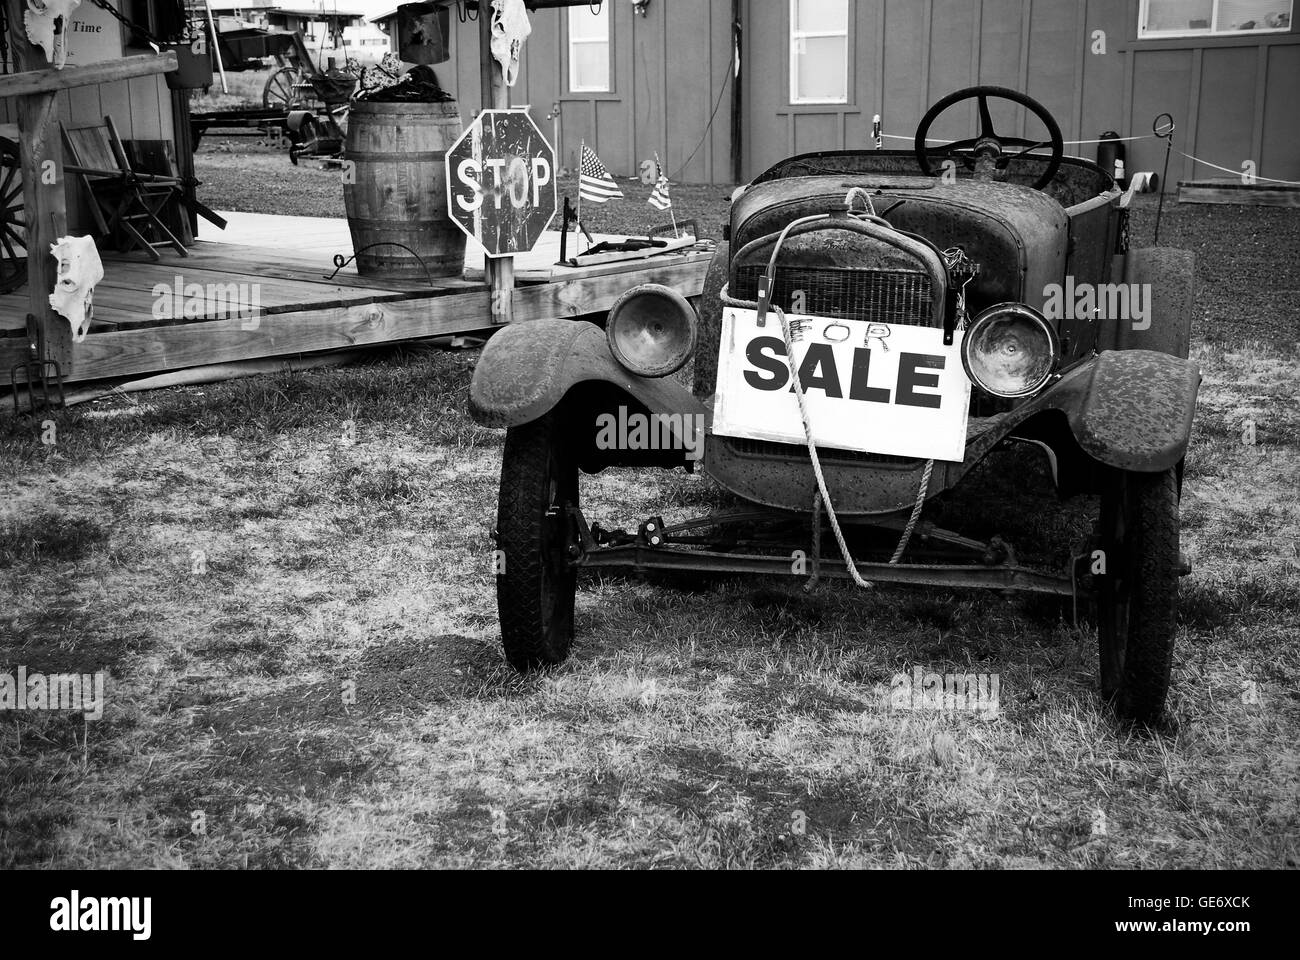 Old Rusty Car Black and White Stock Photos & Images - Alamy